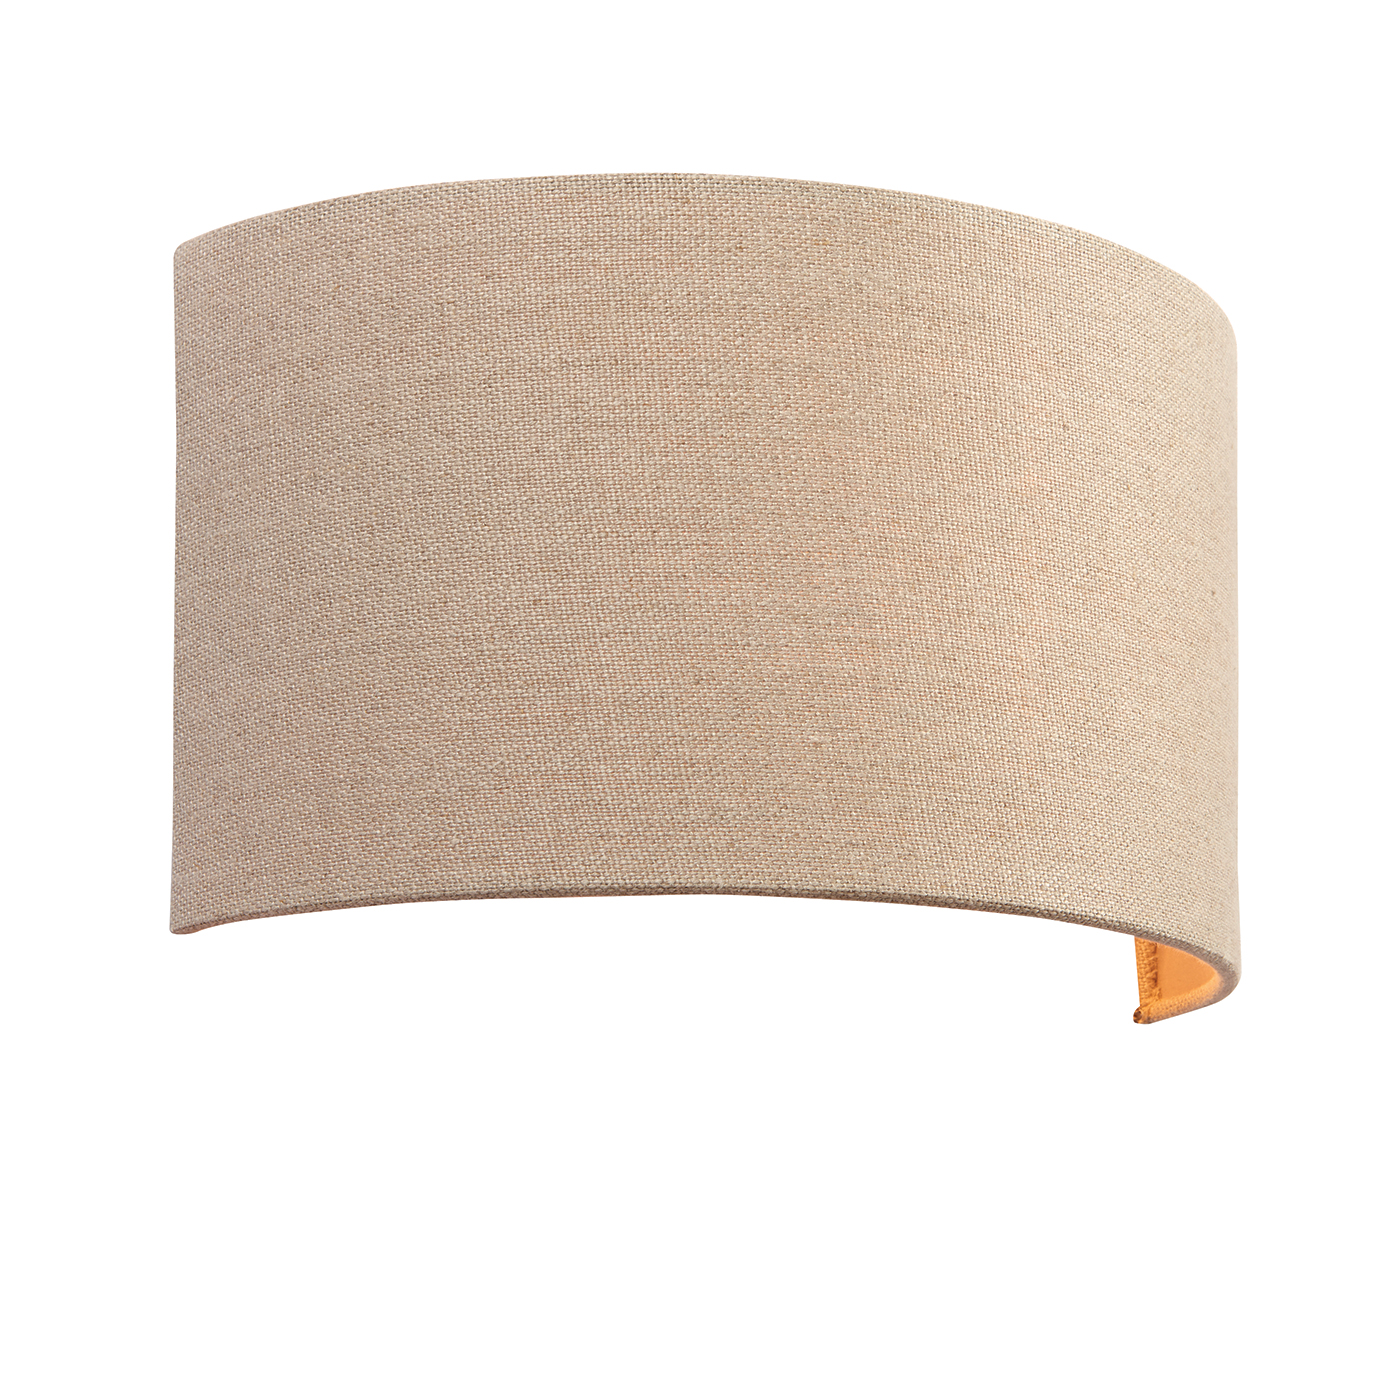 Endon Obi 1lt wall light 40W Natural linen fabric & natural polyester cotton